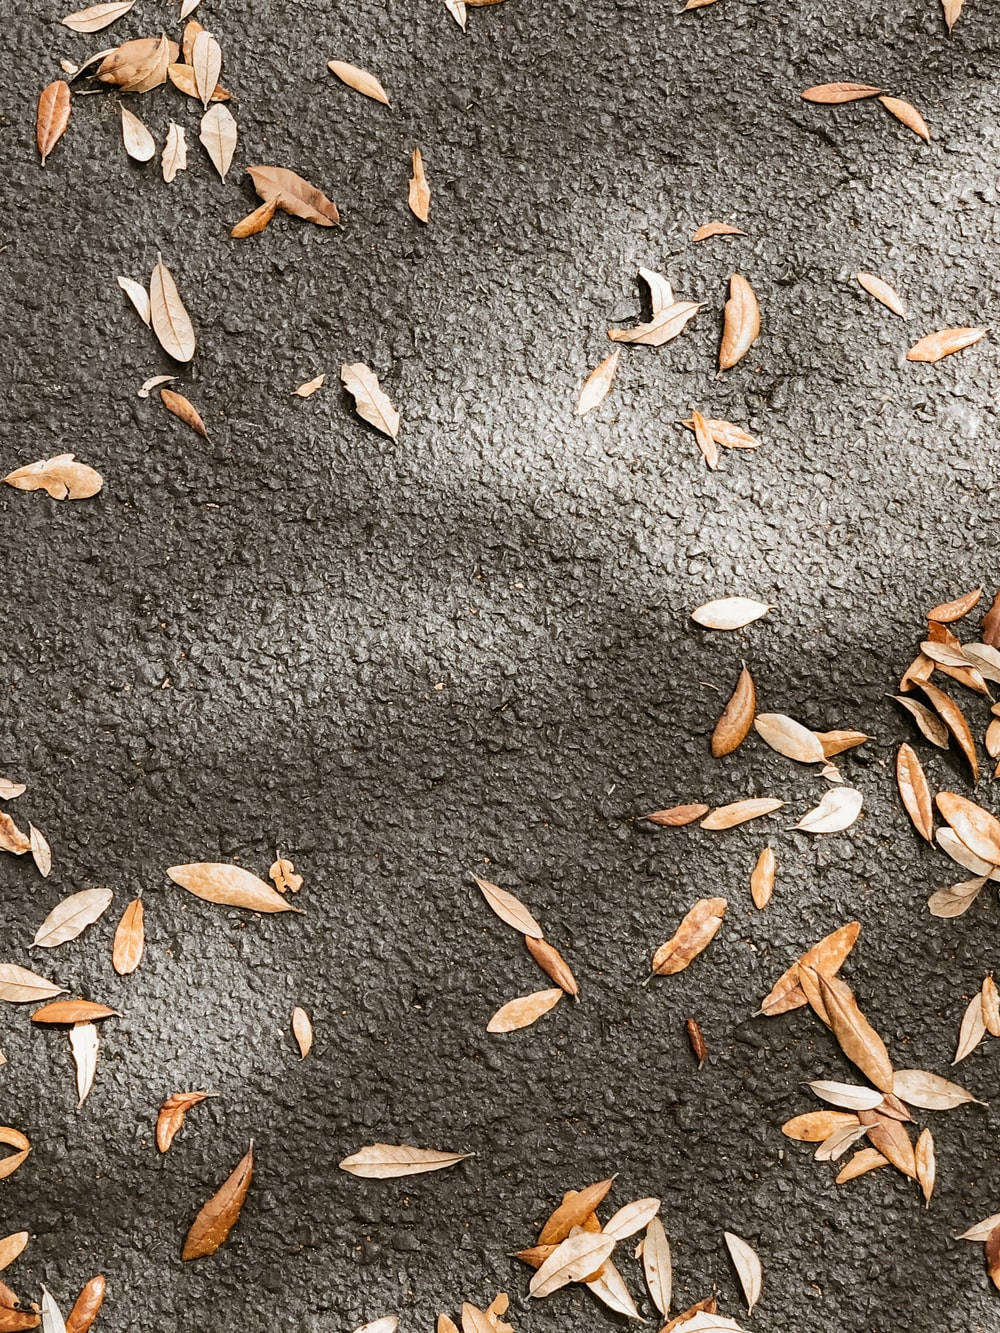 brown leaves on gray concrete pavement